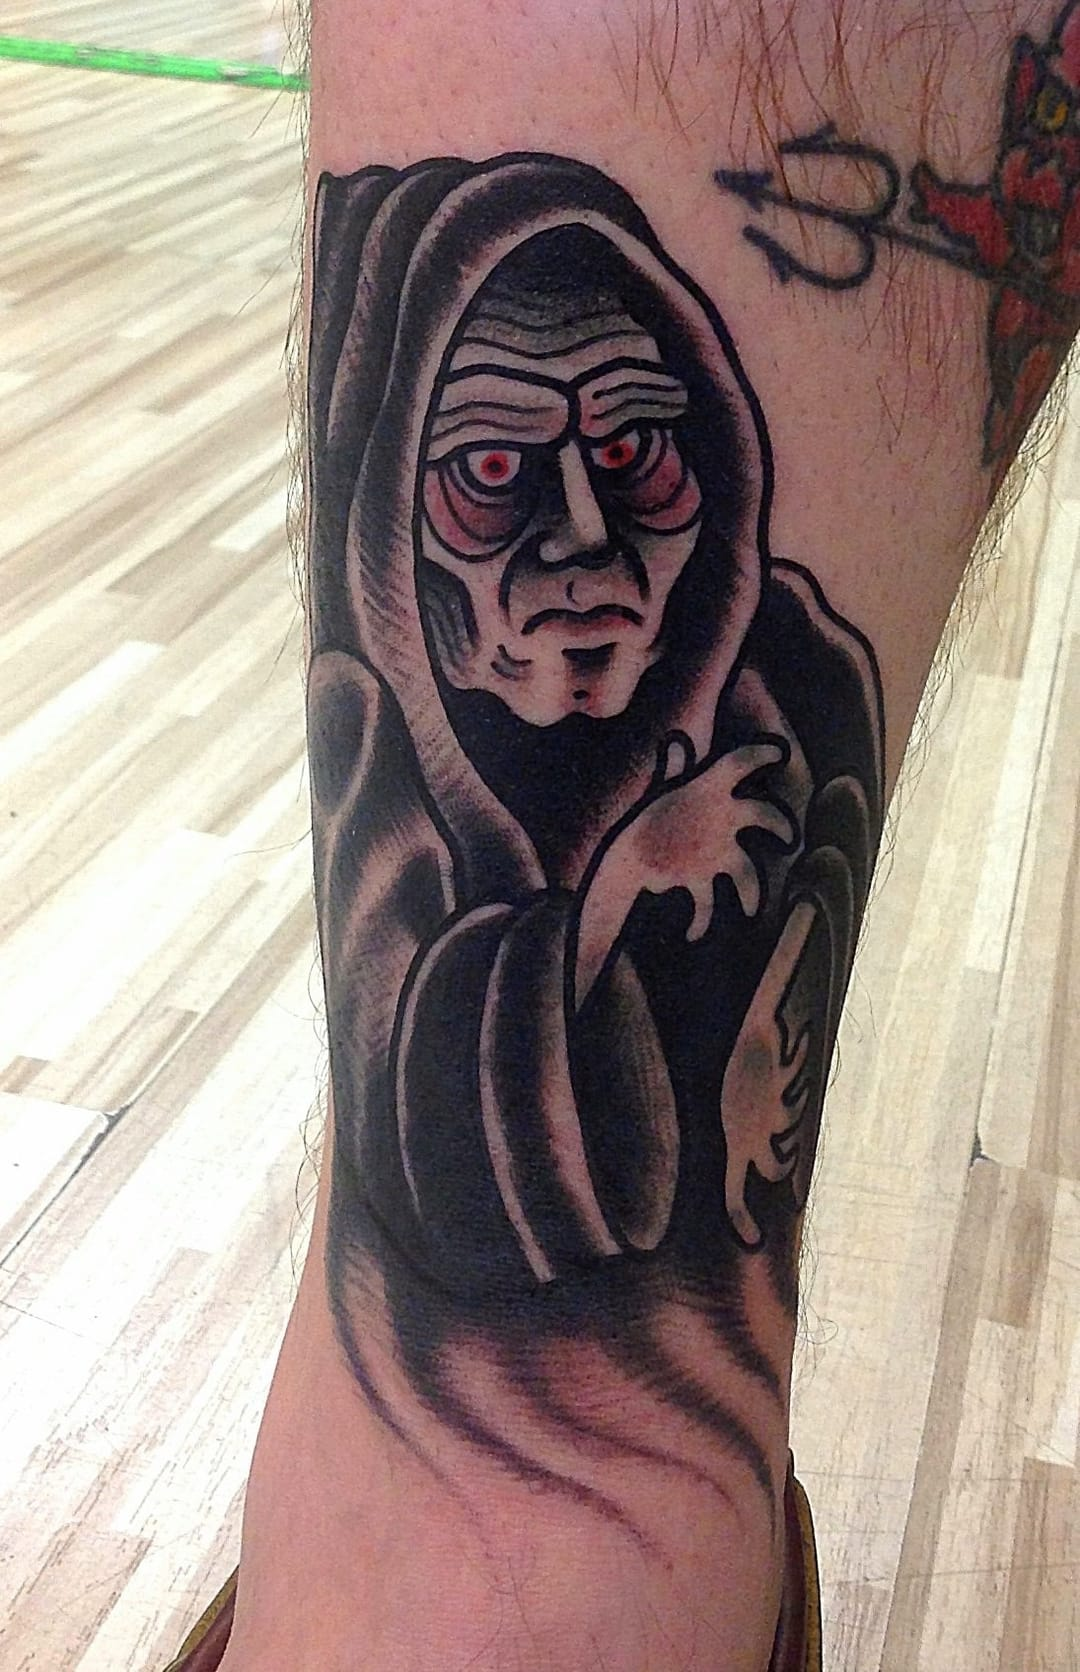 A really fun and solid traditional Emperor Palpatine tattoo!